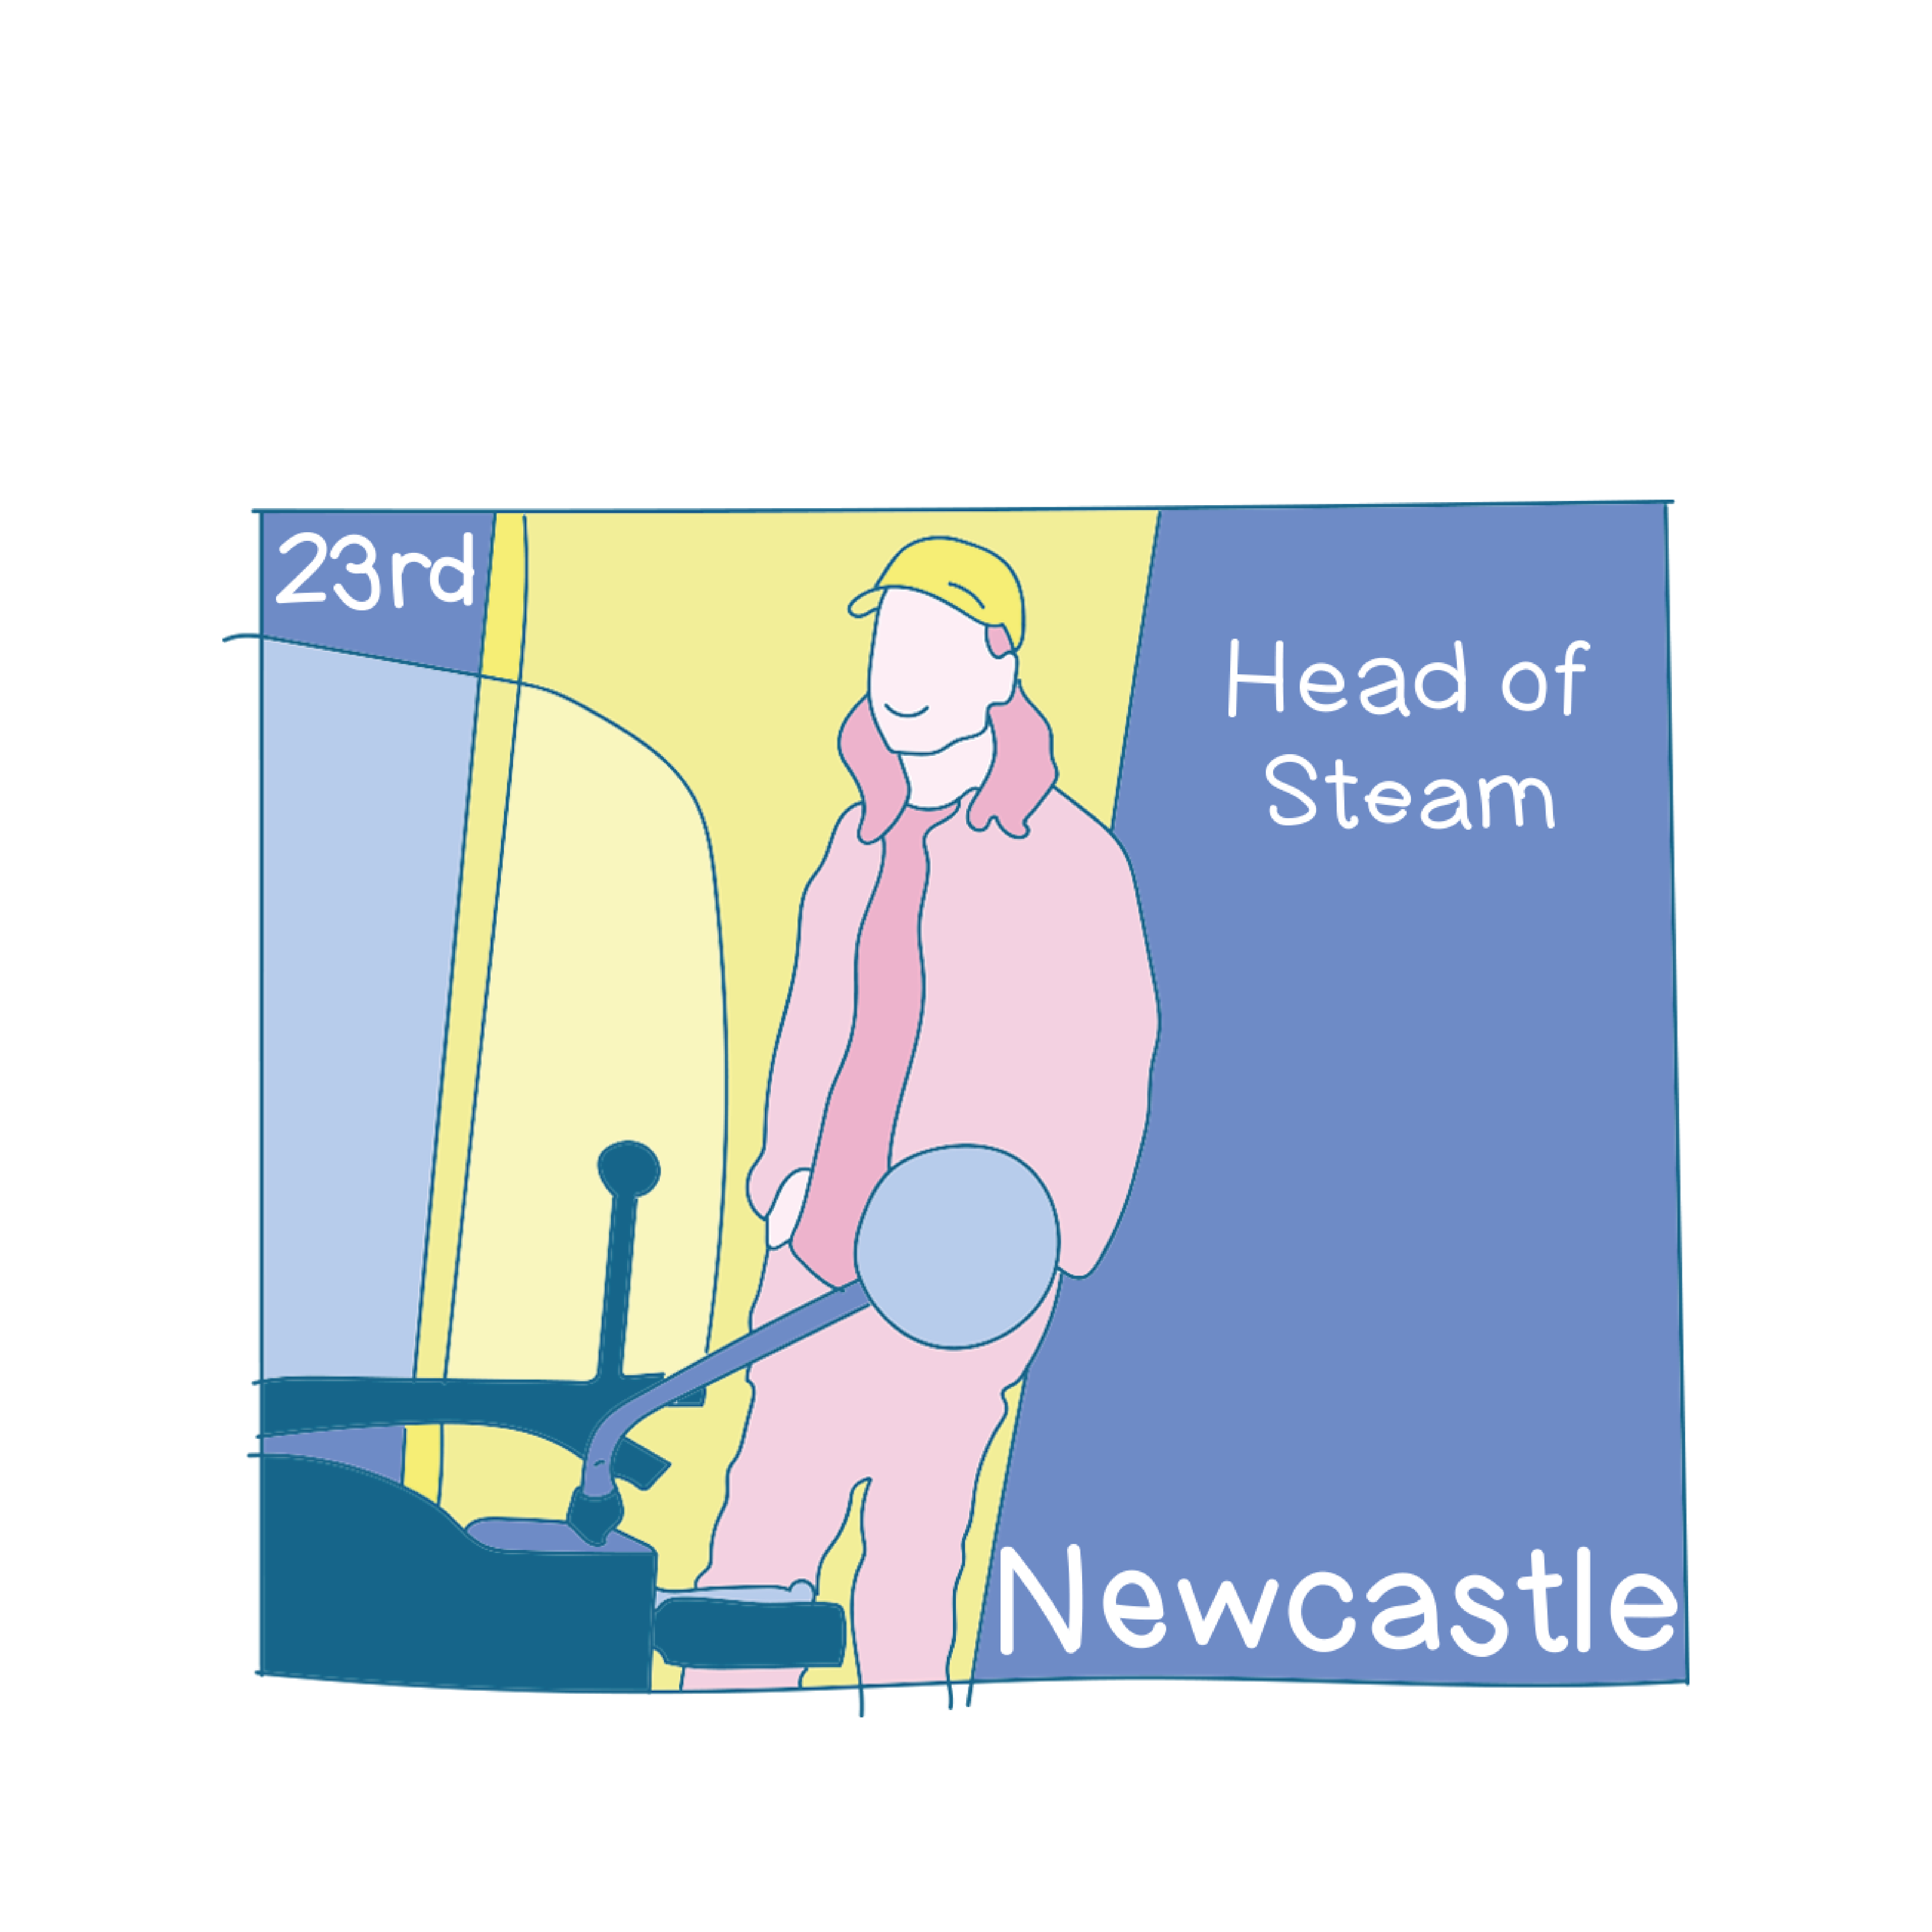 23rd - Newcastle